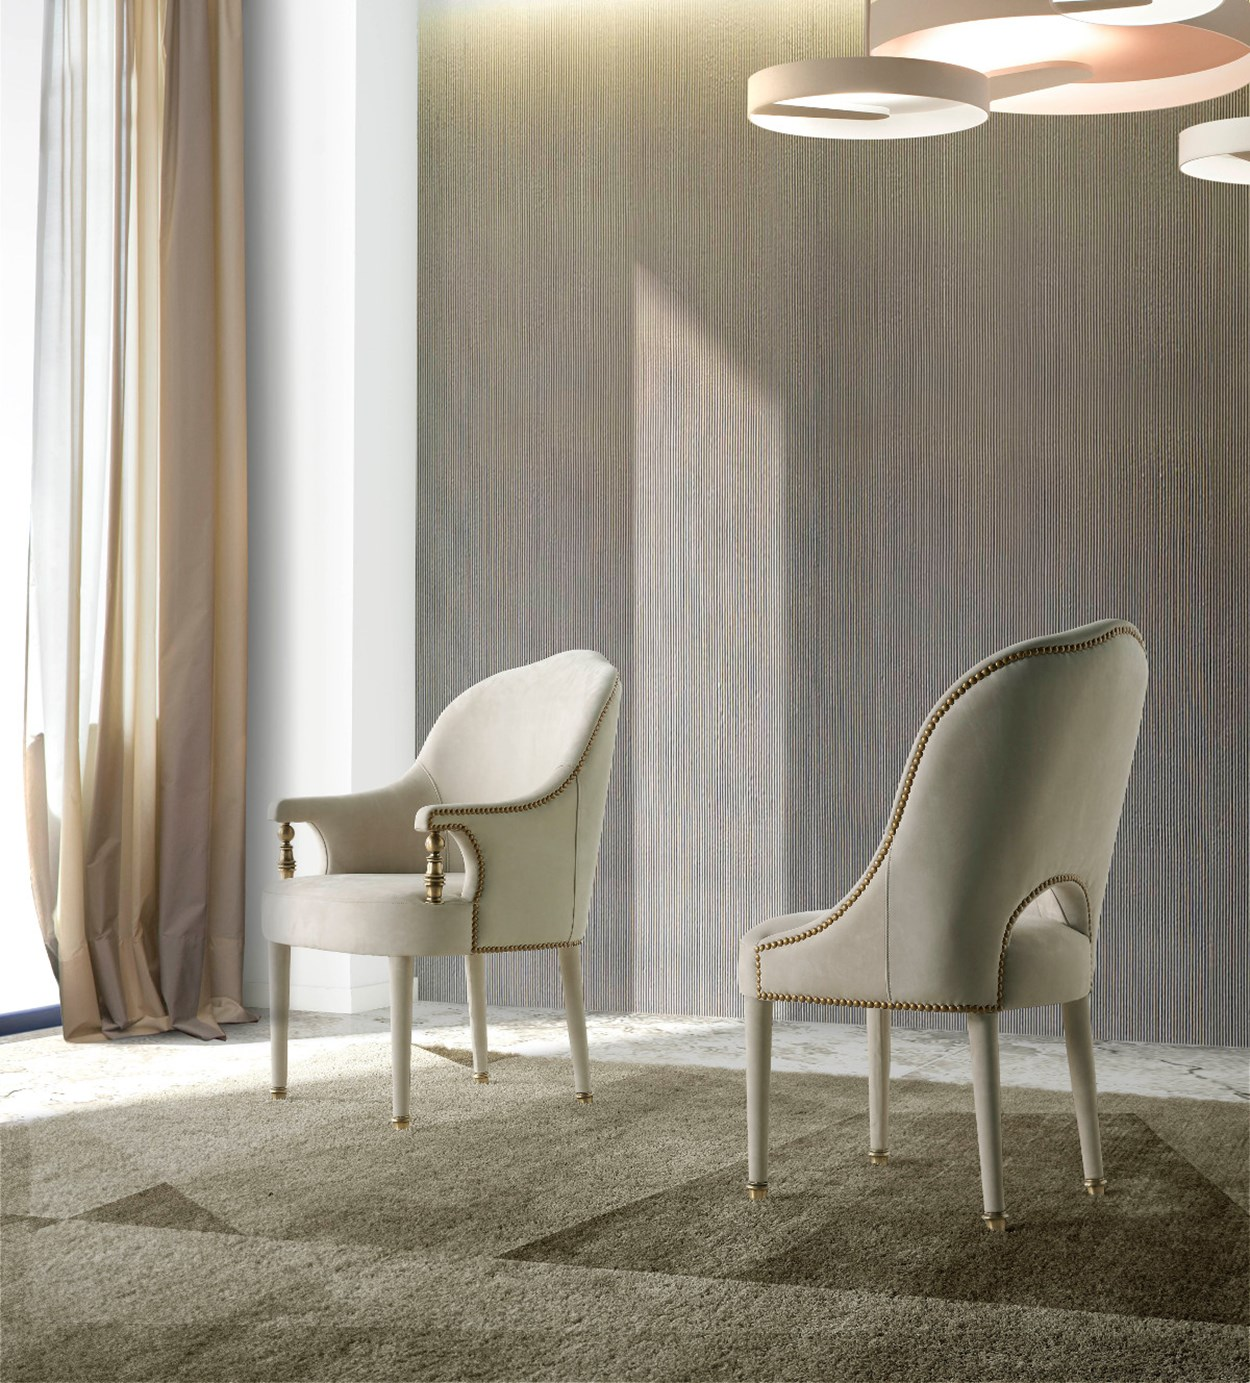 Soher - Earth Collection -Dining  Chair.jpg